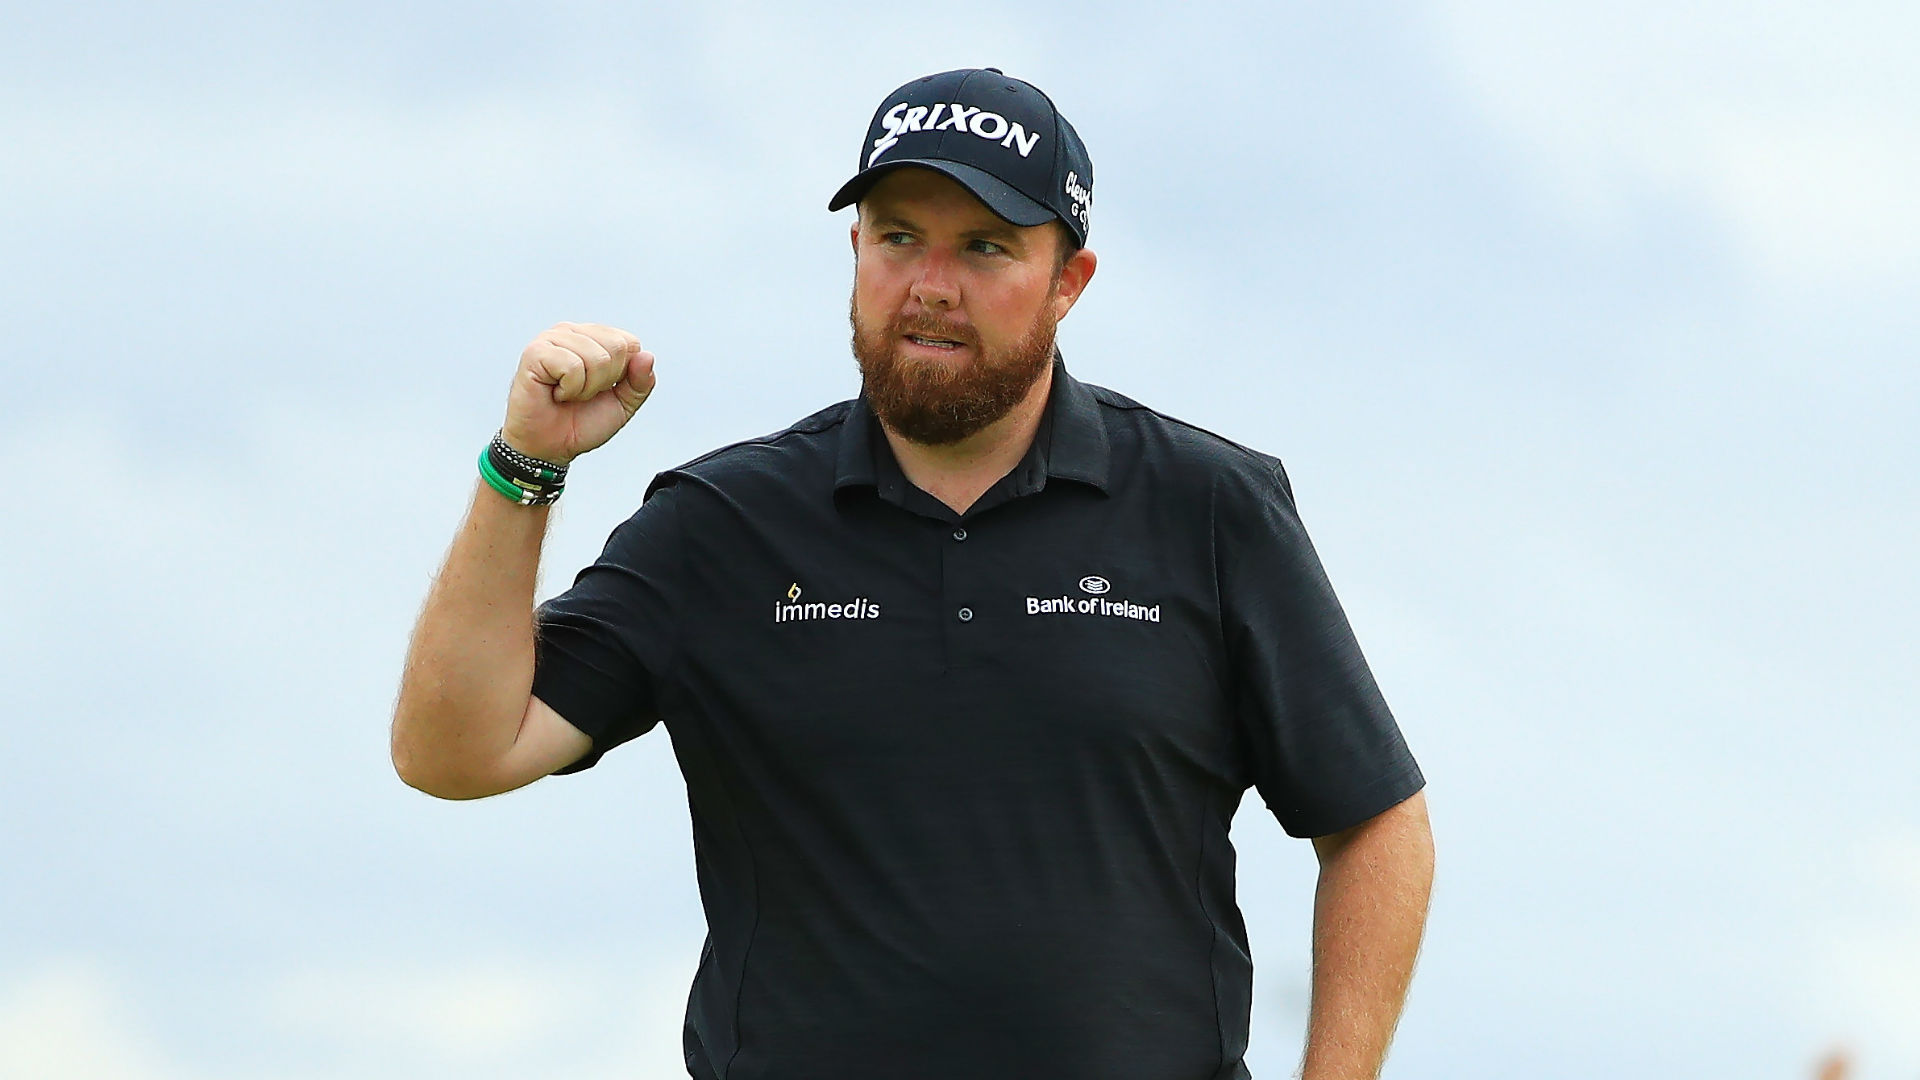 British Open 2019: Shane Lowry shoots stunning 63 to seize control